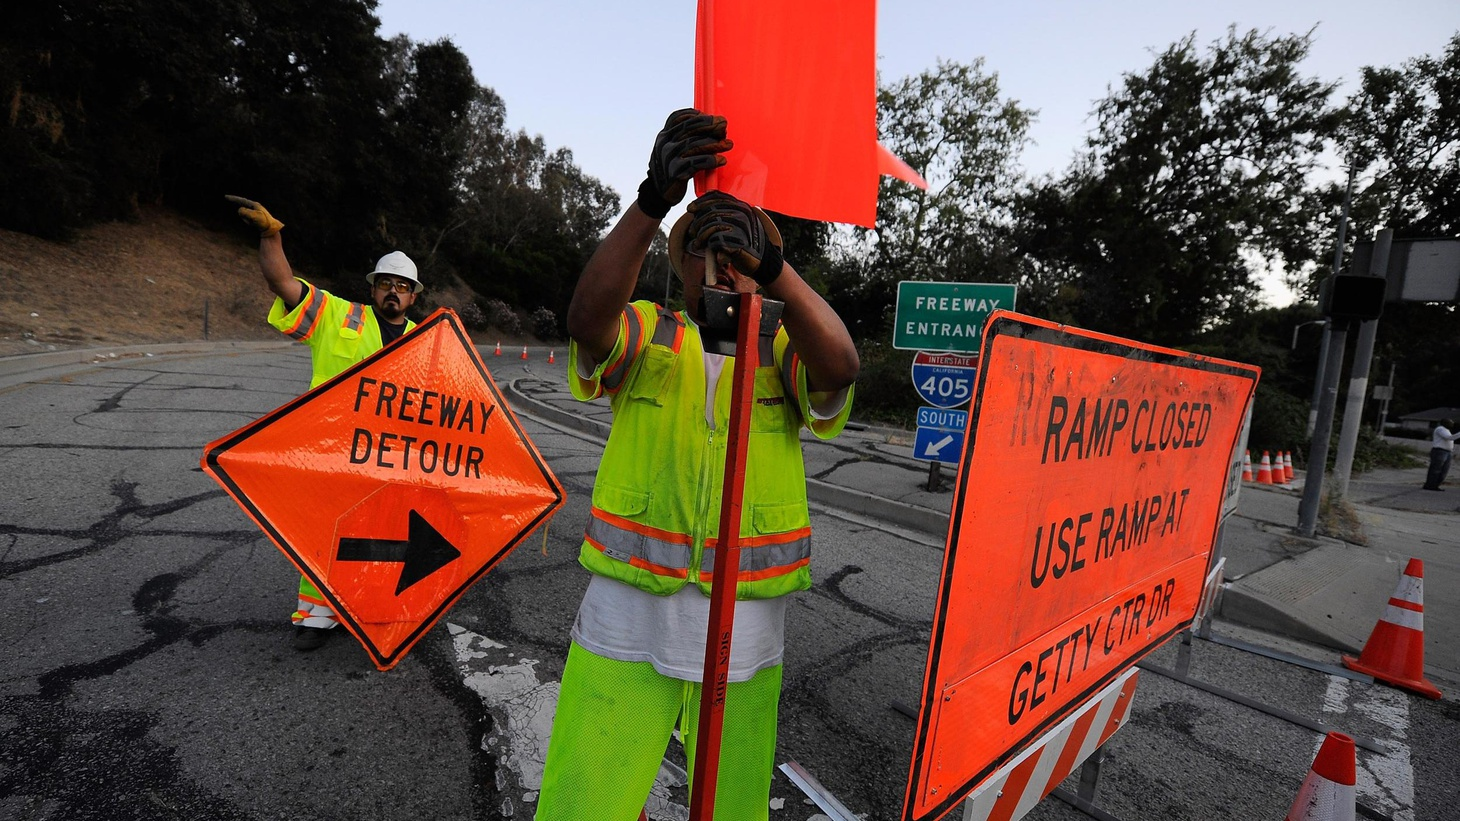 """Carmageddon,"" the 405 weekend closure through the Sepulveda Pass, turned into a breeze because Metro warned motorists for weeks in advance. But Metro waited until Friday..."